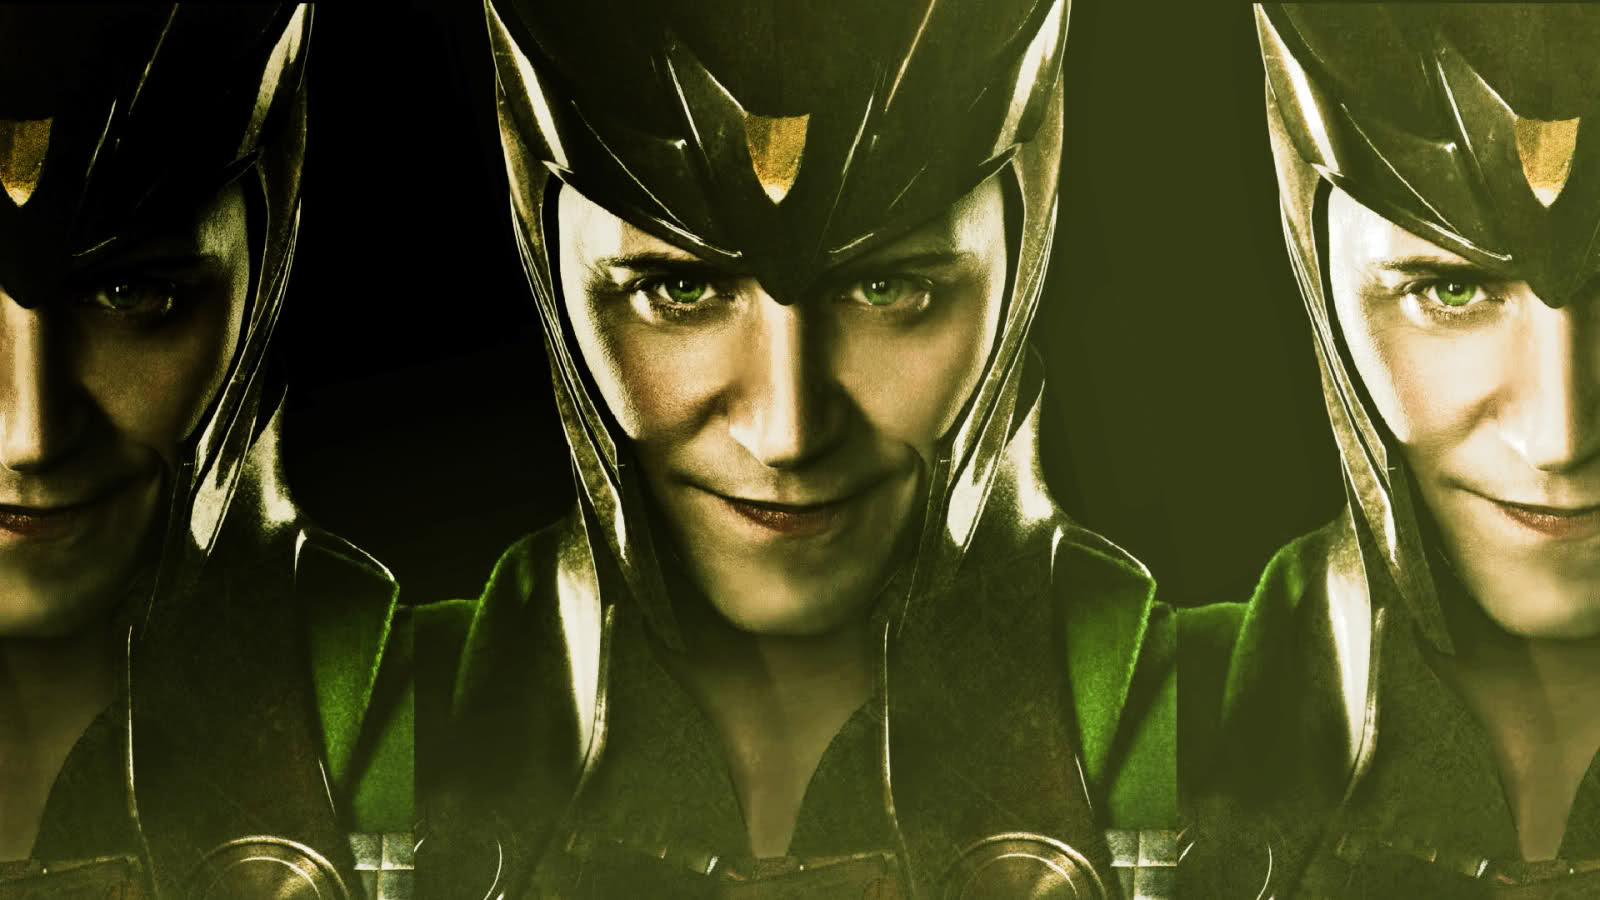 Loki - Loki (Thor 2011) Wallpaper (32378258) - Fanpop